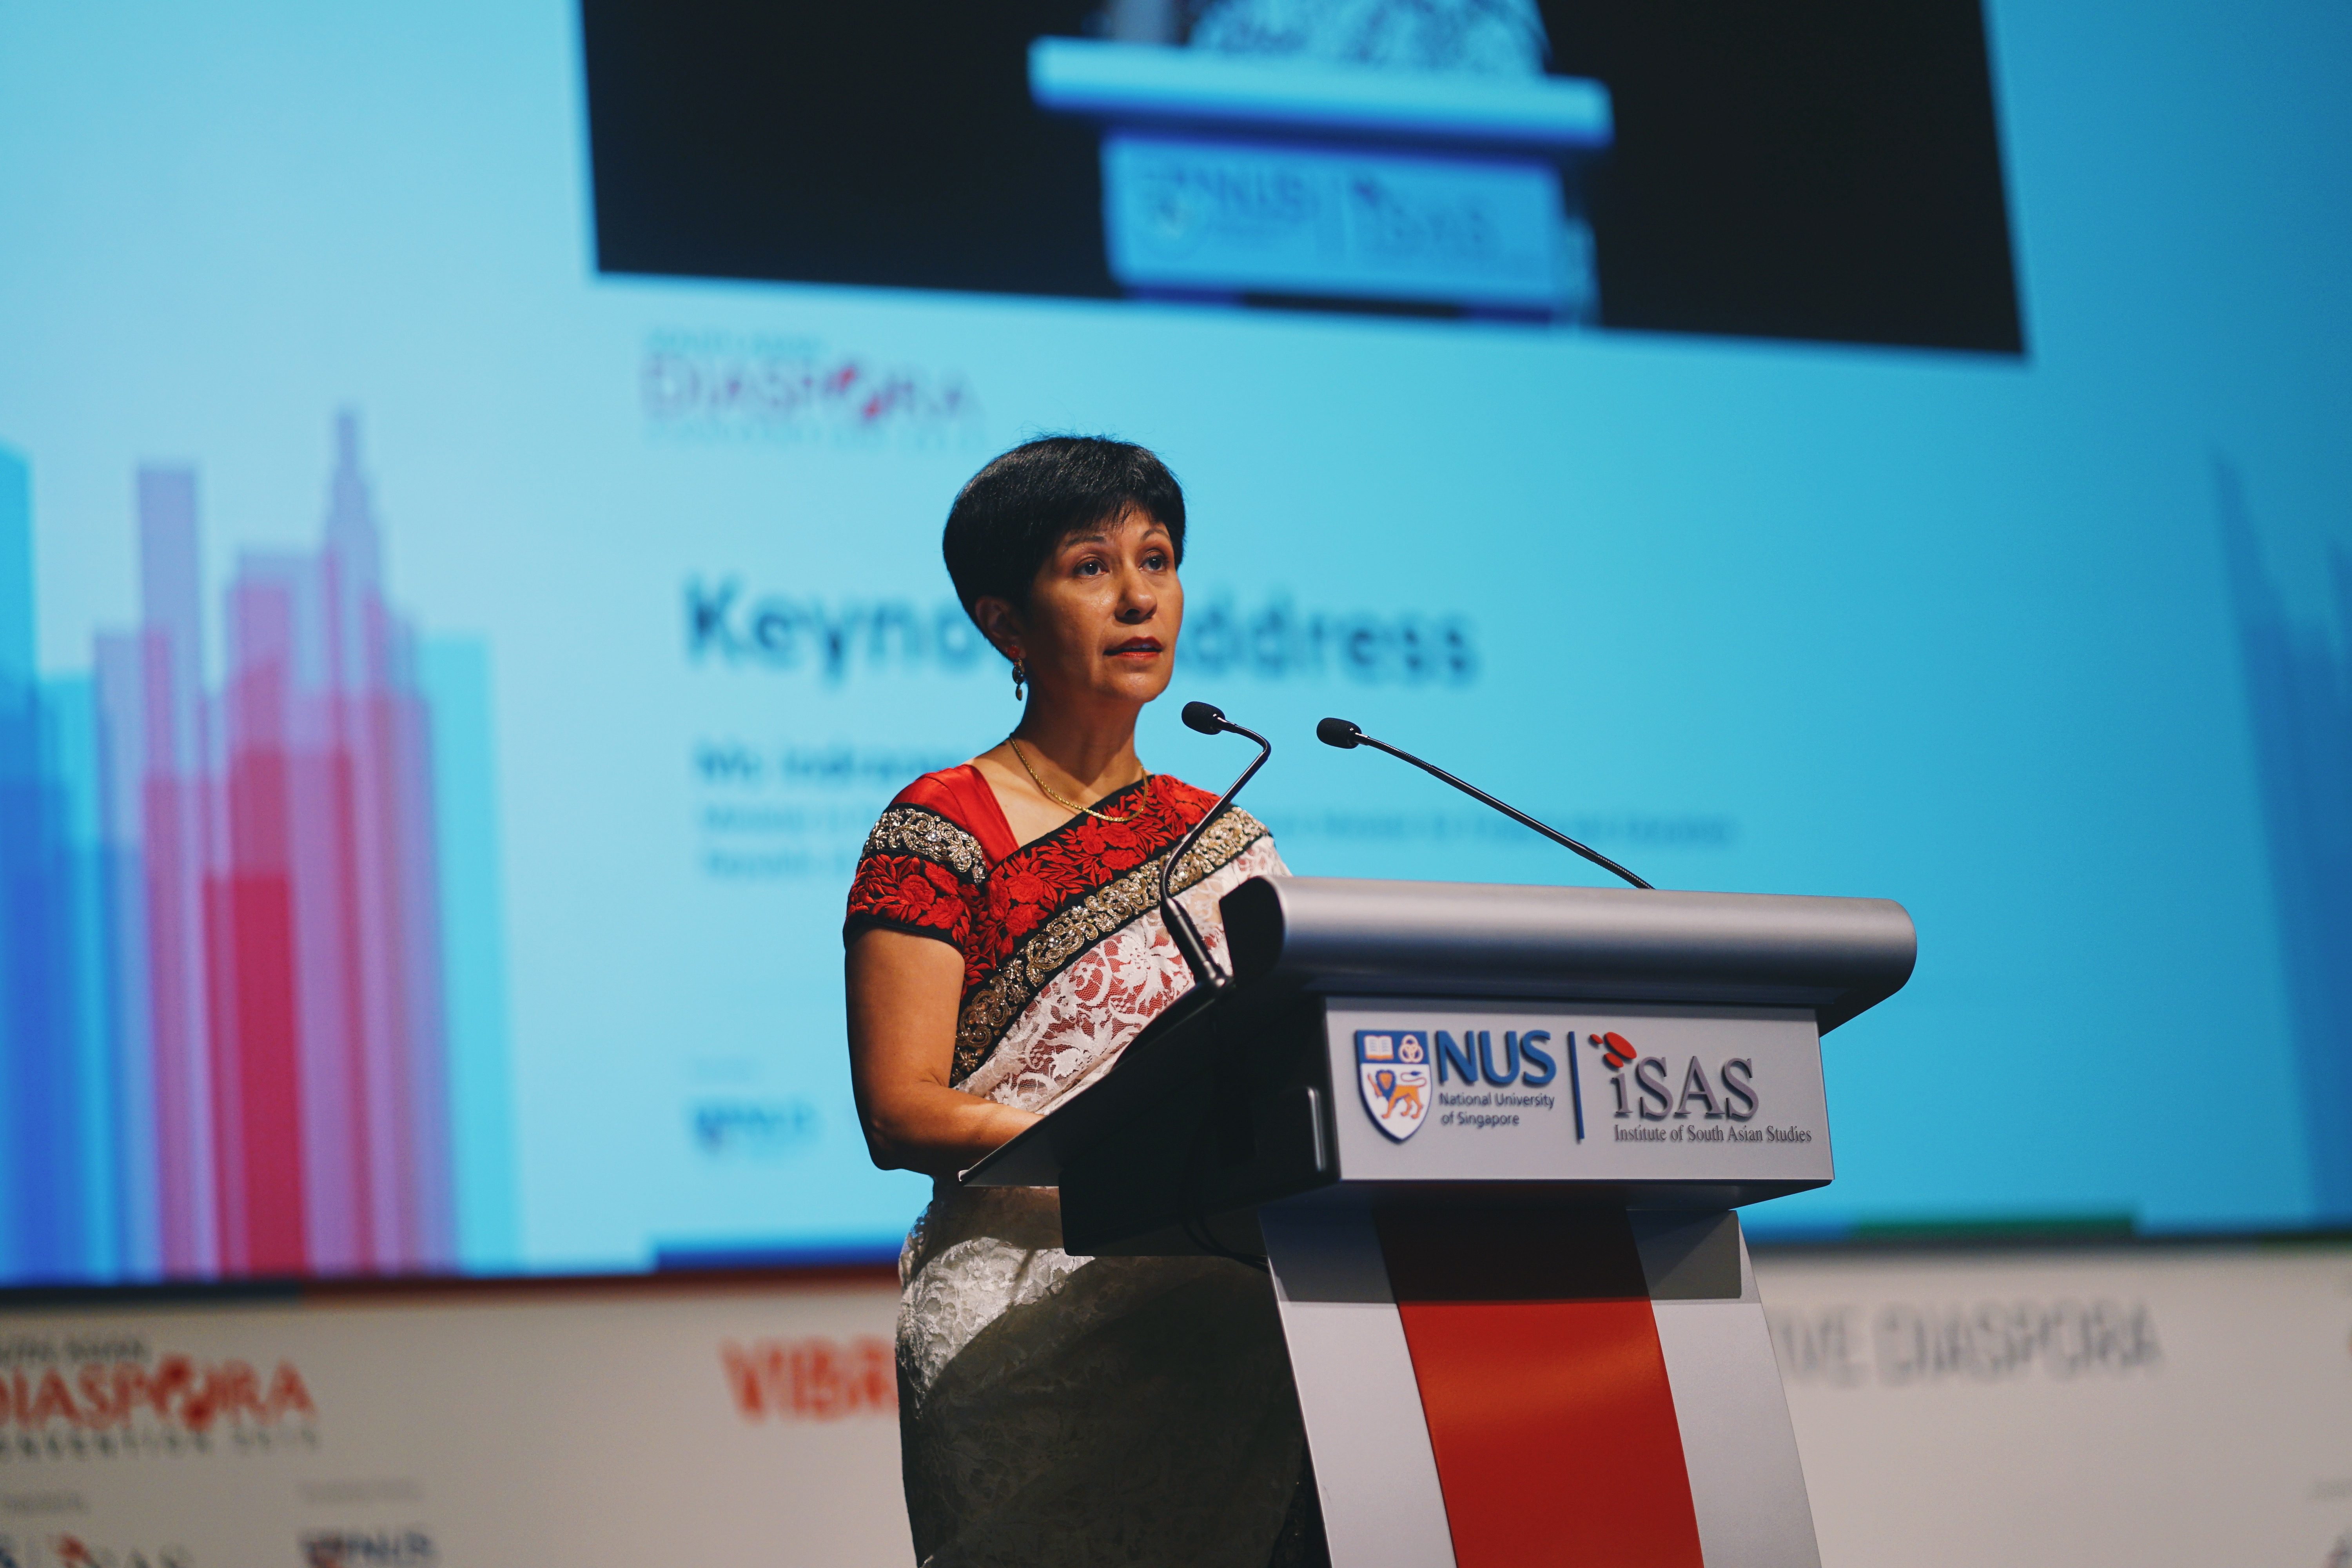 Indranee Rajah, Singapore's Second Minister for Finance and Education, speaking at the South Asian Diaspora Convention 2019. Photo courtesy: Institute of South Asian Studies, NUS